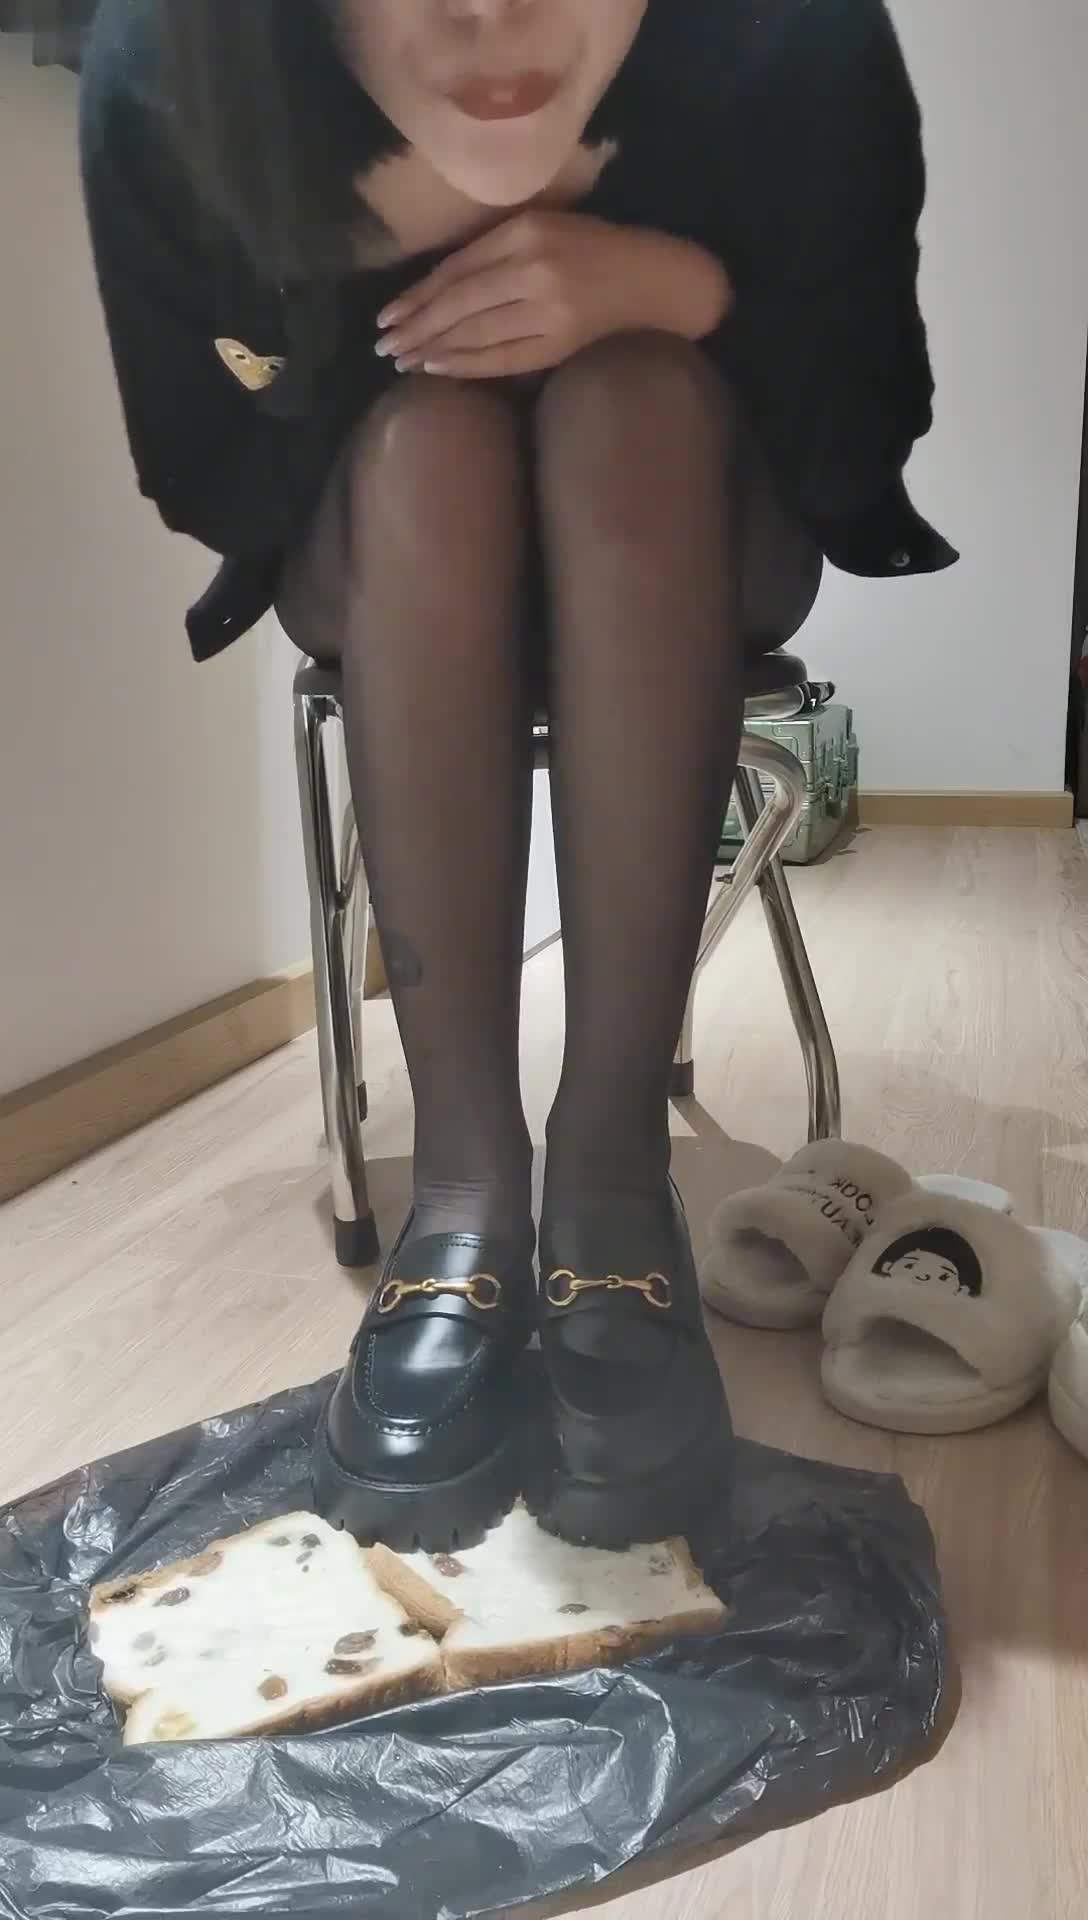 Spit, trample on dirty shoes, feed, humiliate you